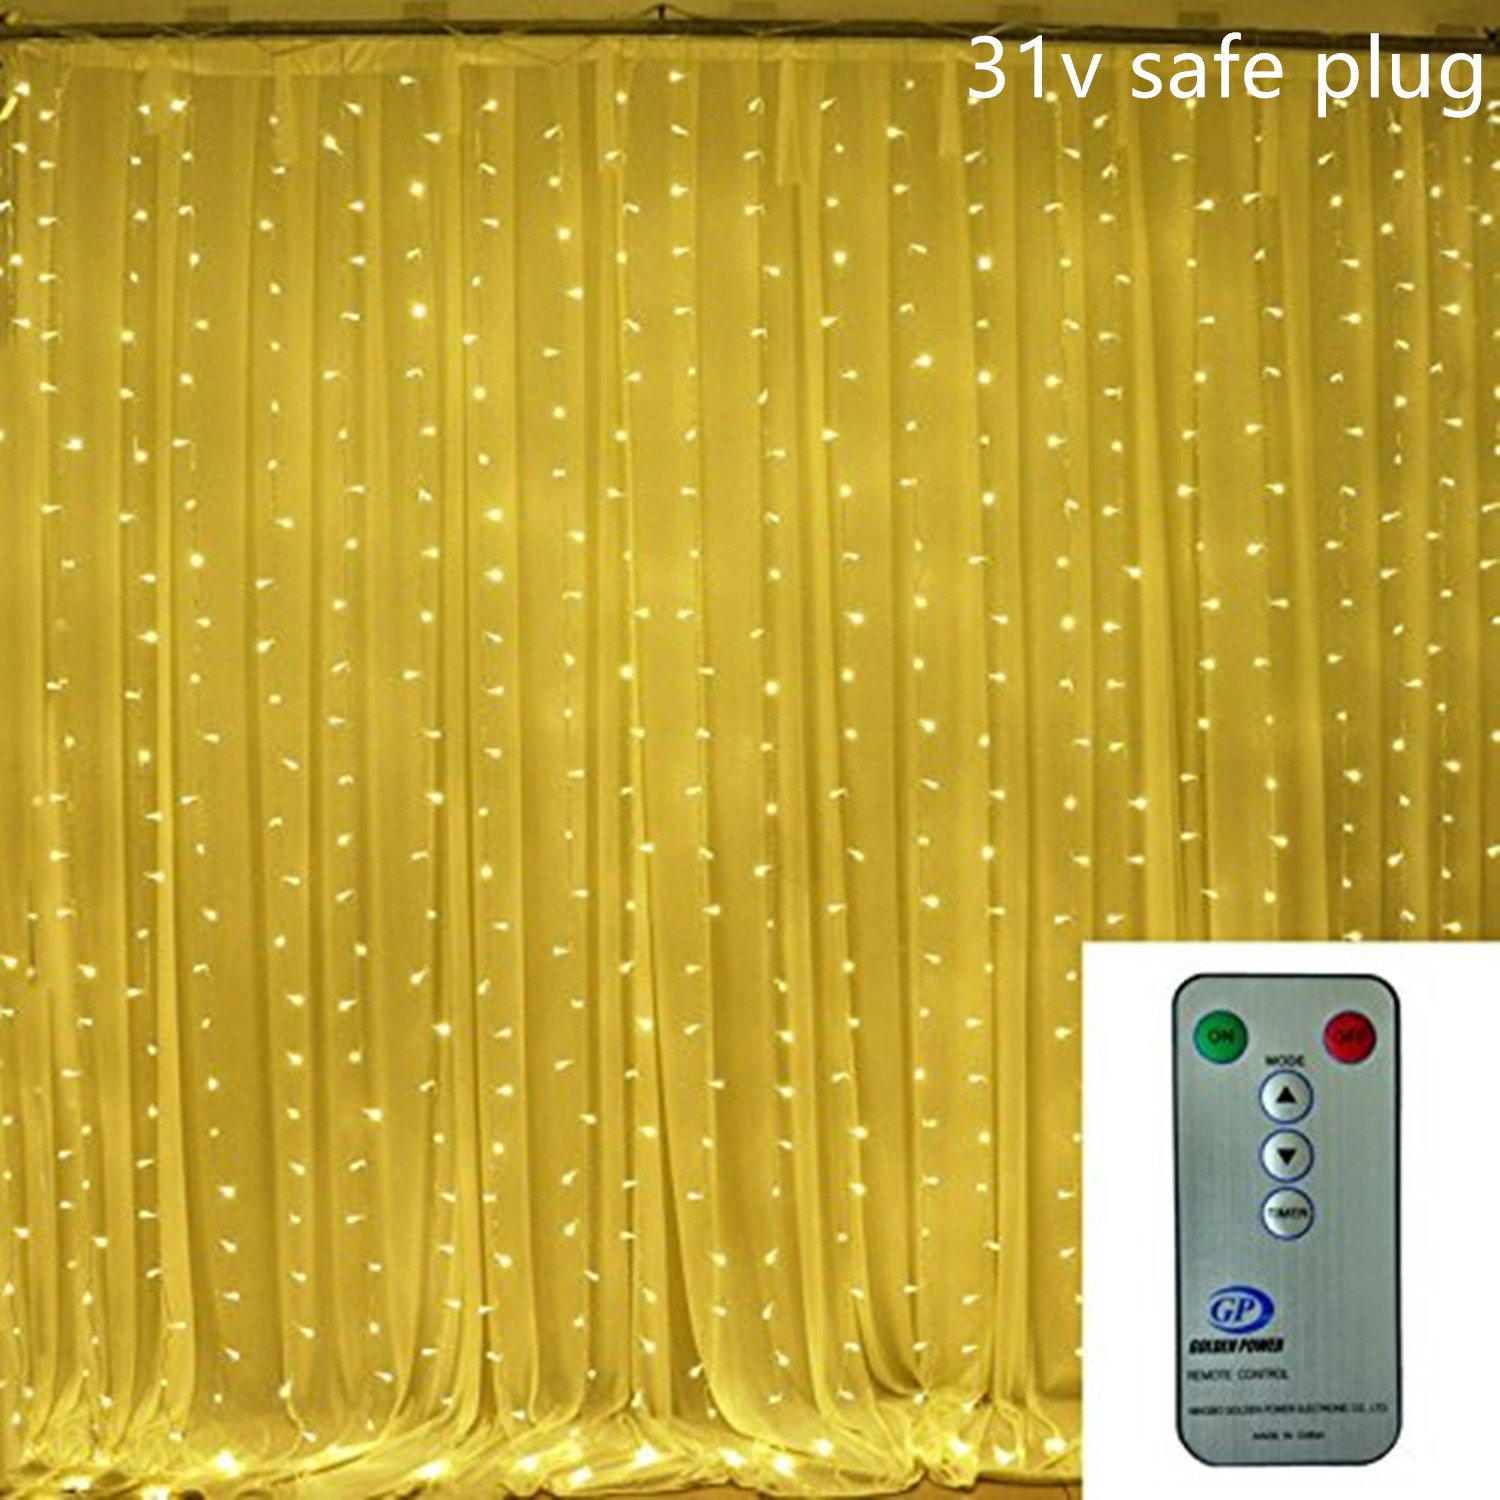 Window Curtain Icicle String Lights for Bedroom Indoor, 600 Led, 6 Meters X 3 Meters, 8 Mode, Backgroud Decoration Fairy Lights for Halloween the Mall Hotels Showcase Bar (Warm White-600 Led with Remote) EchoSari